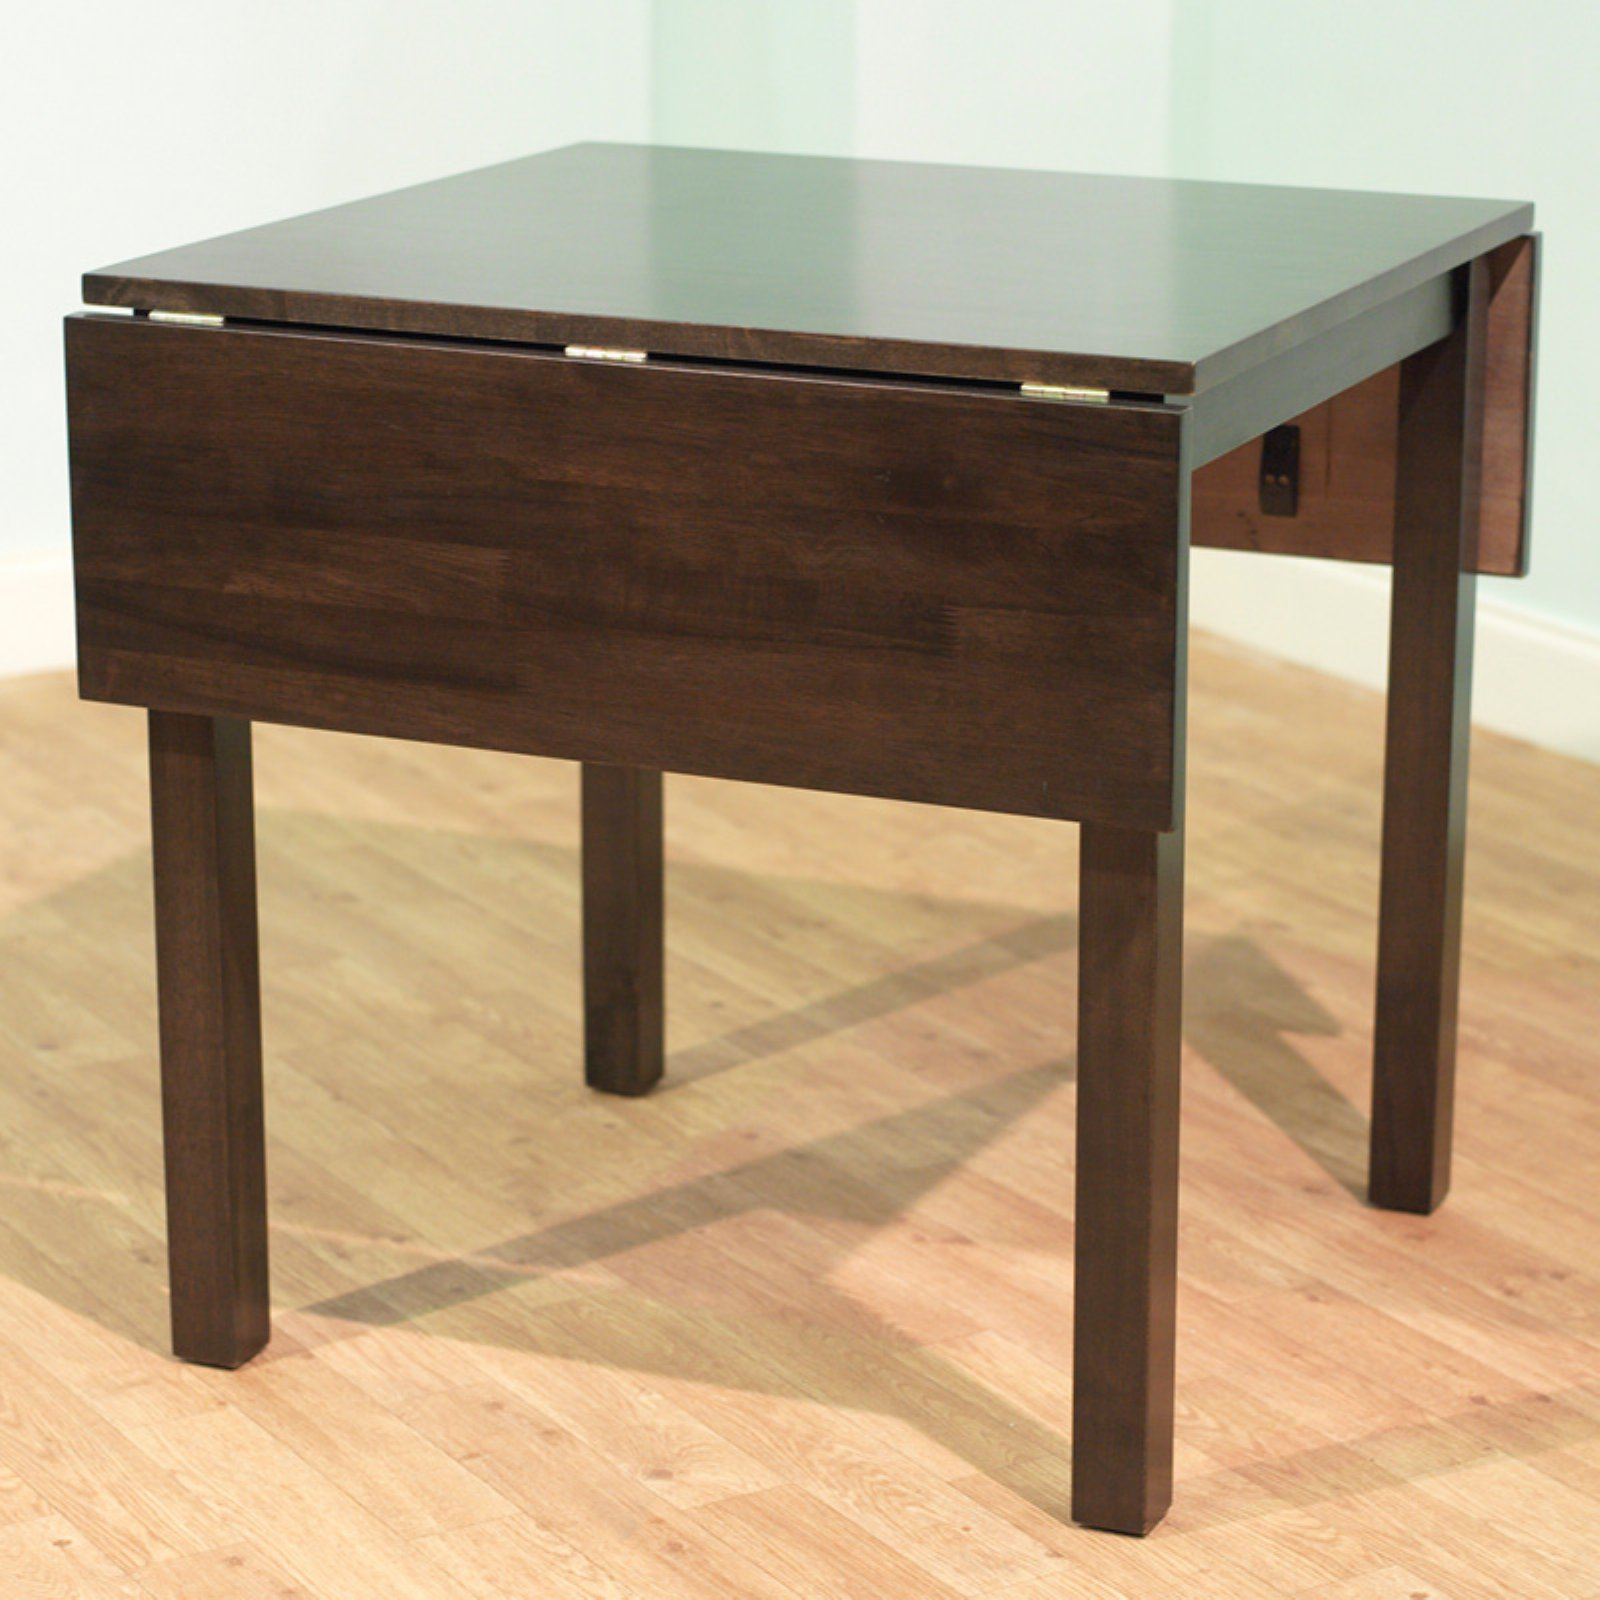 Target Marketing Systems Austin Dining Table with Drop Leaf